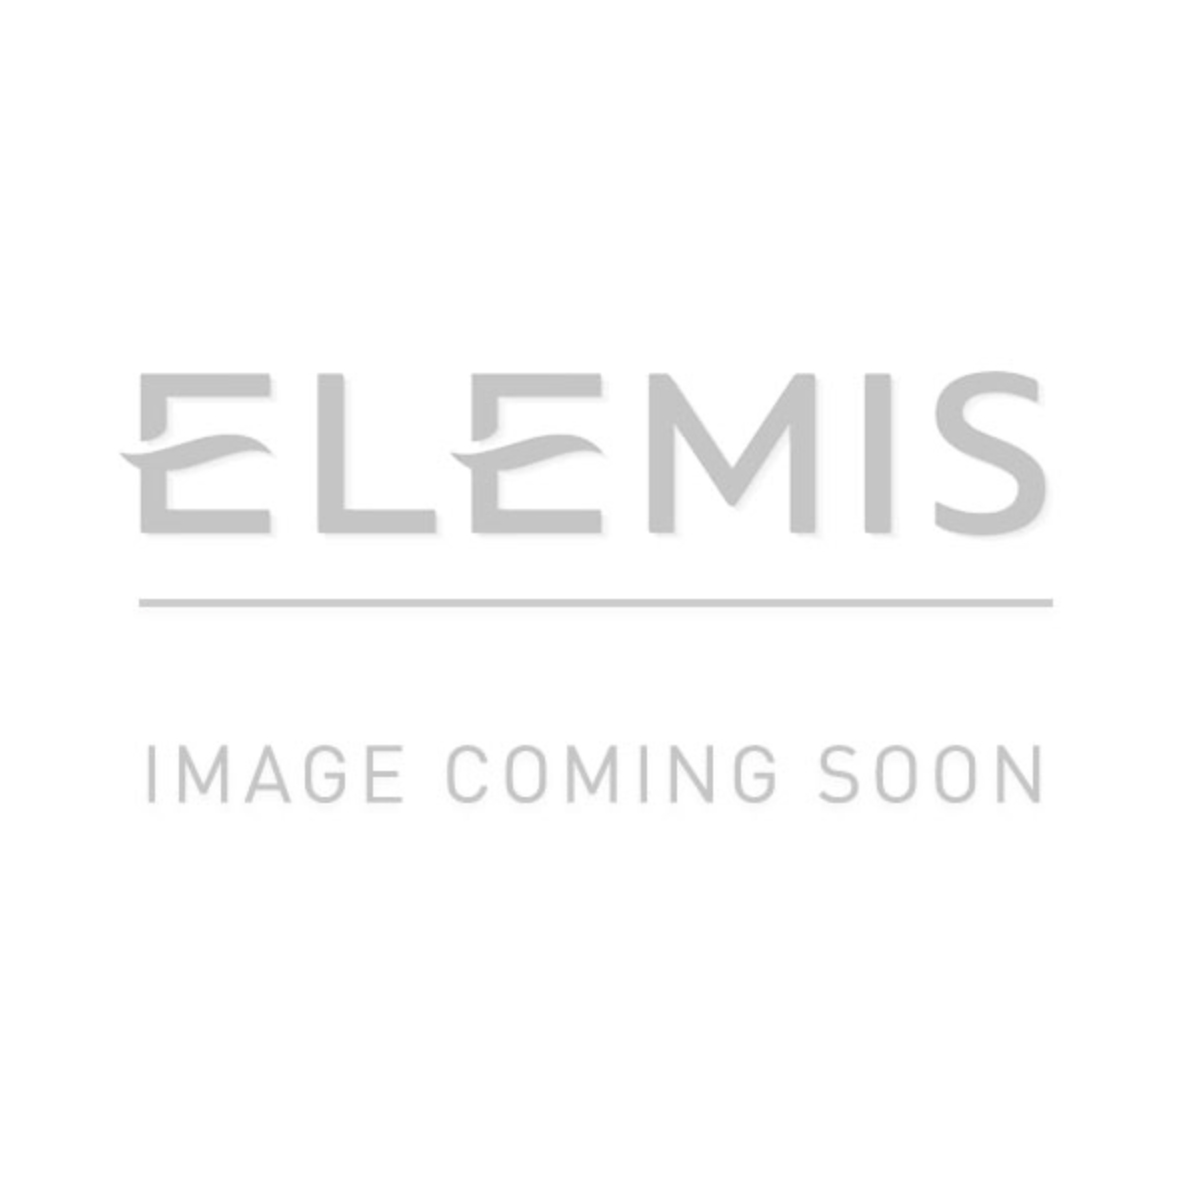 elemis pro-collagen oxygenating night cream, anti-wrinkle night cream, 1.6 fl. oz. The yeon Lotus Flower Charcoal Transform Cleanser / Health & Beauty / Skin Care / Moisturizers / cleansing oil / korean beauty cosmetic